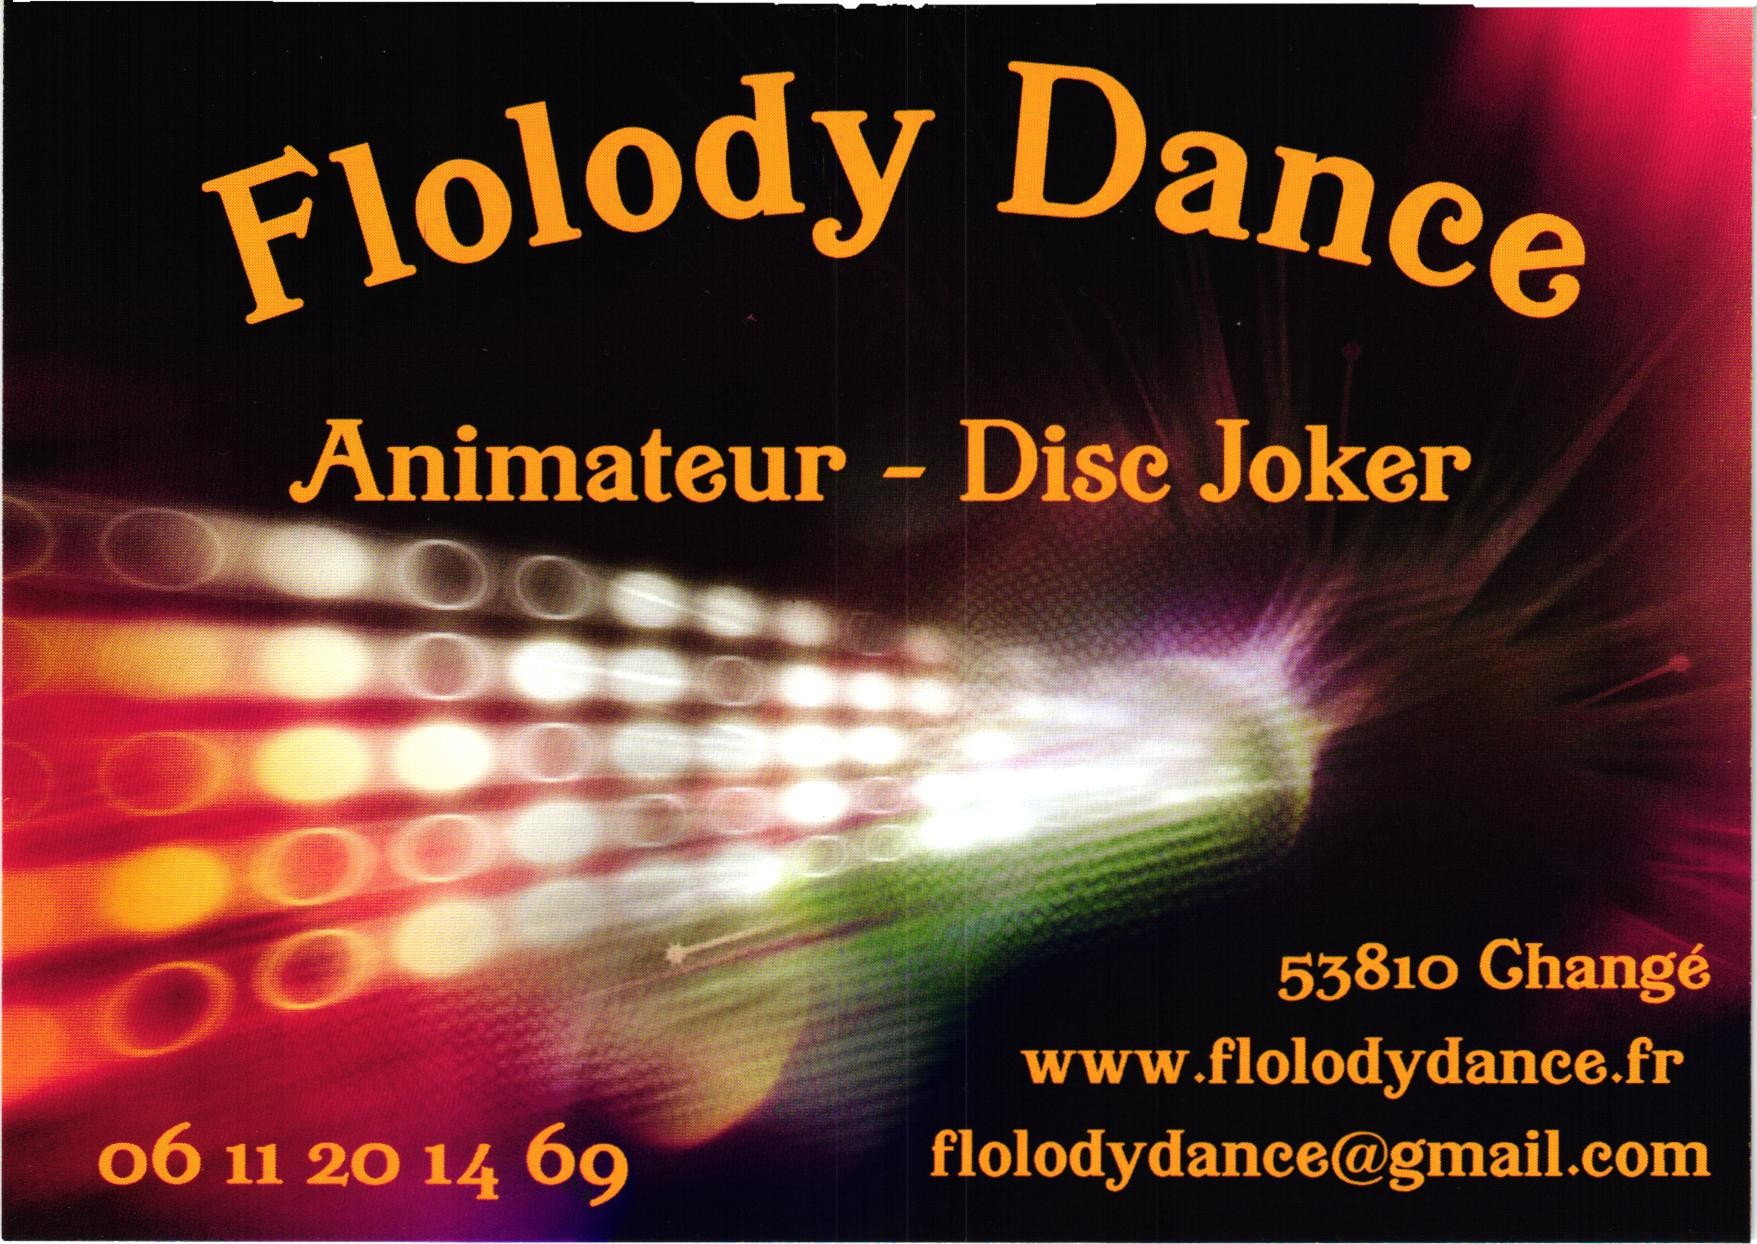 Carte flolodydance